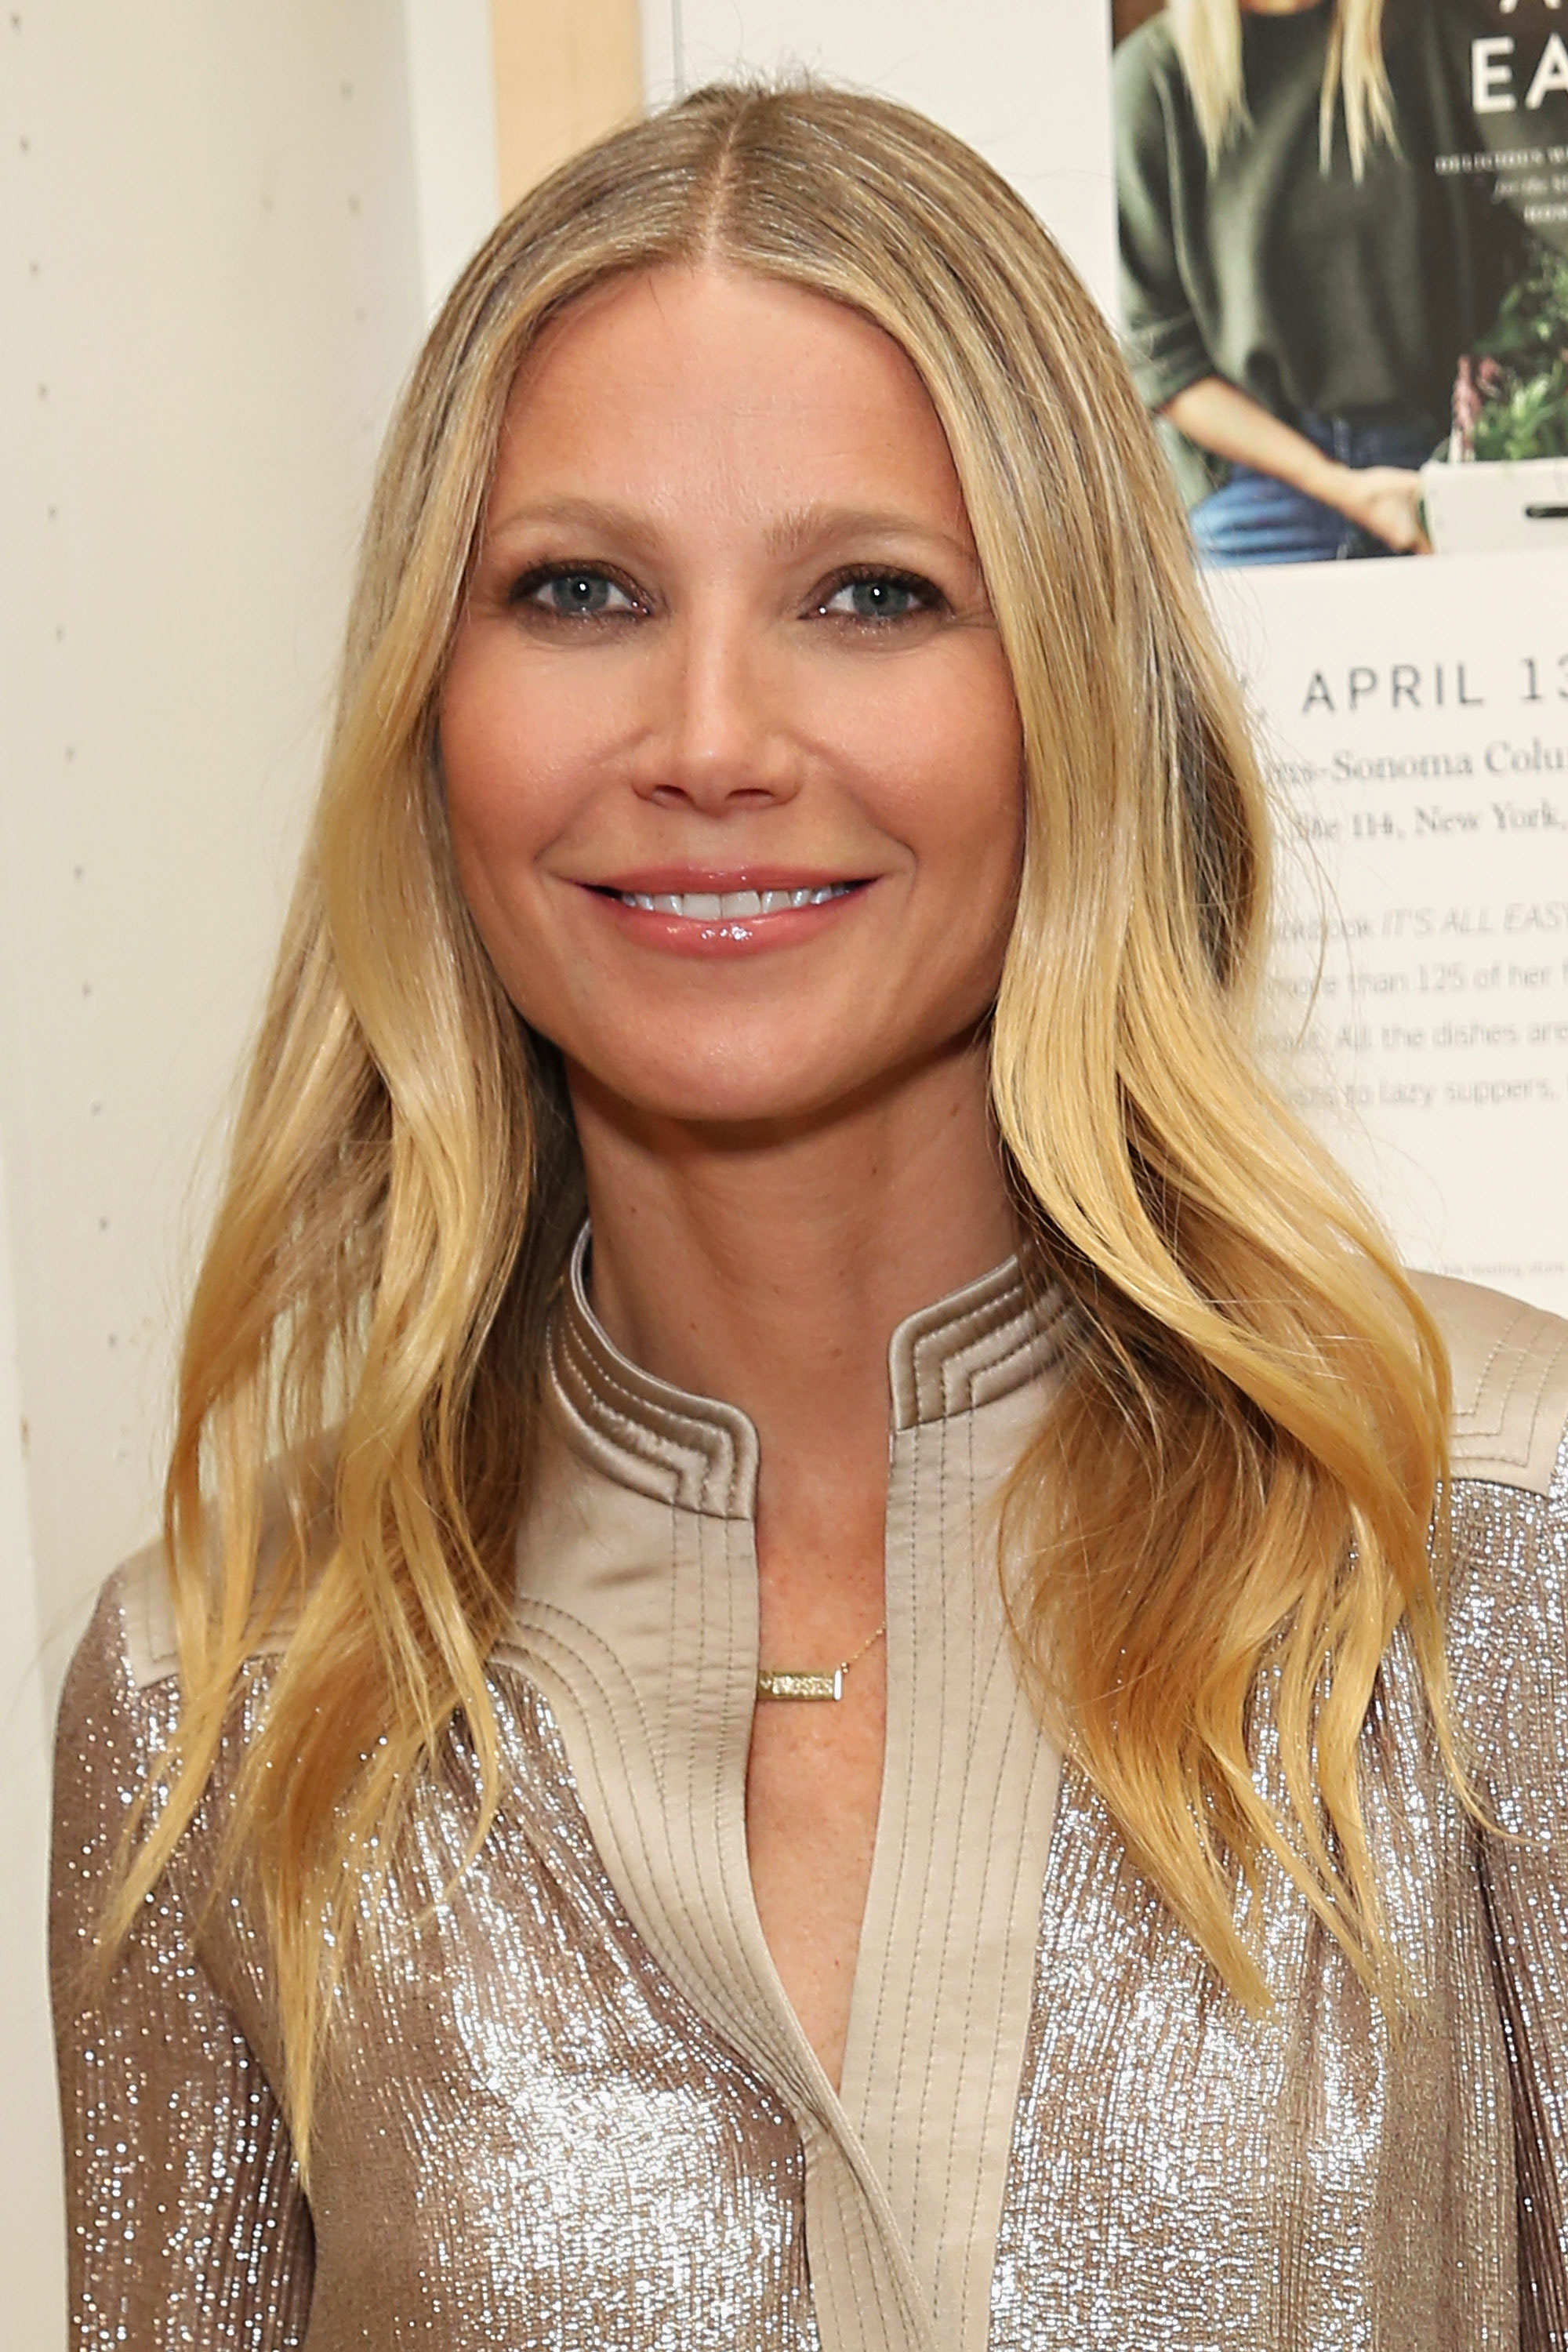 Gwyneth Paltrow looking glamorous to sign copies of her book 'It's All Easy' at Williams-Sonoma on April 13, 2016 in New York City